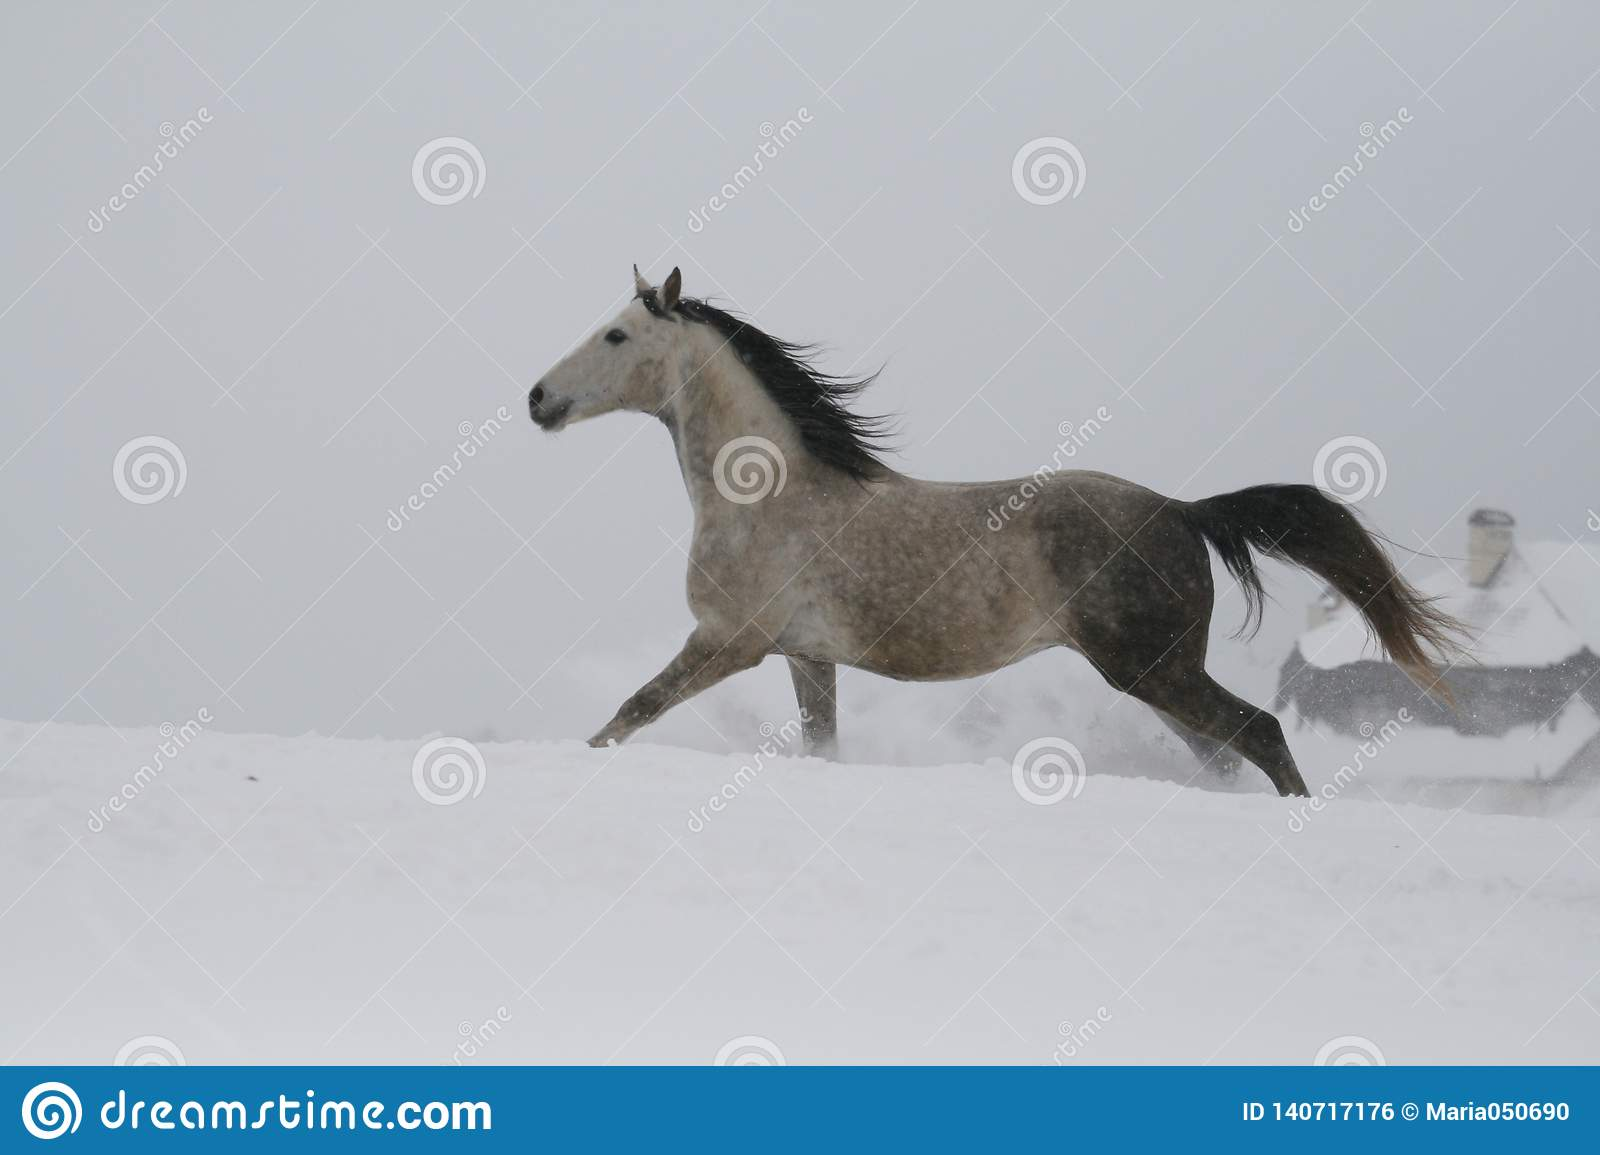 The gray stallion galloping on the slope in the snow. A horse gallops in deep snow.